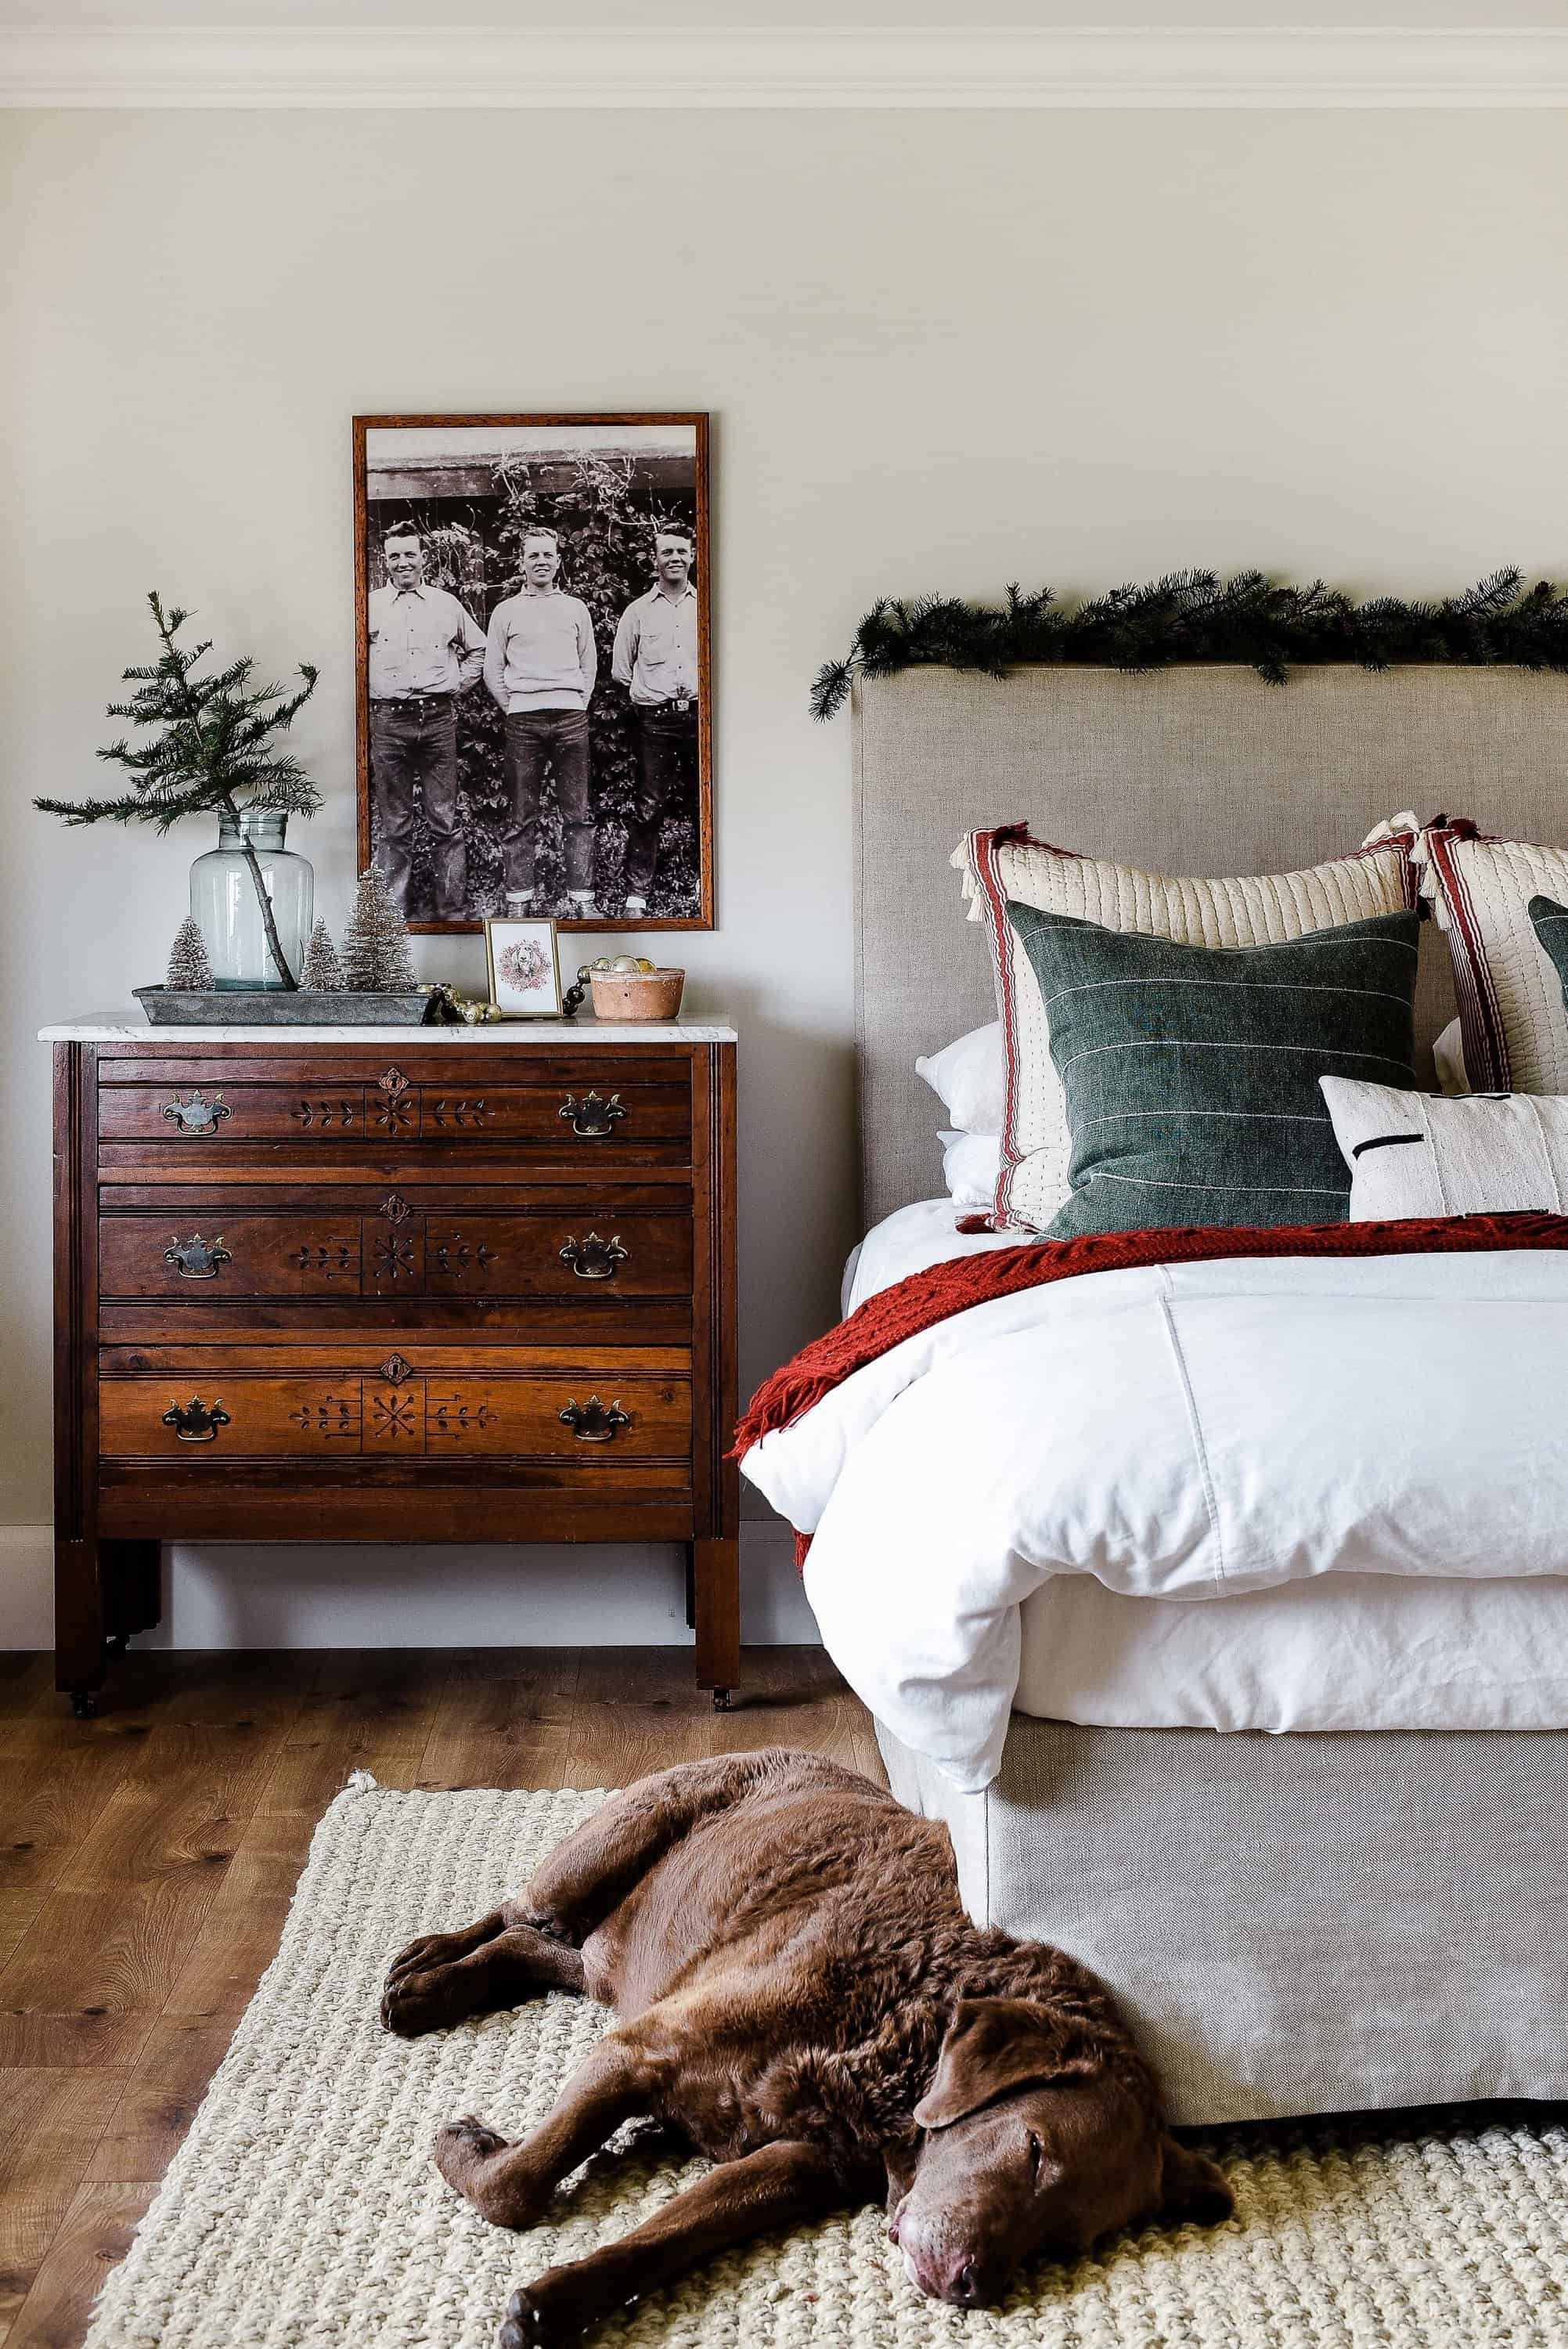 Farmhouse Christmas Decor: Our Christmas Guest Bedroom ... on farmhouse bedroom with wood bed, farmhouse bedroom paint, farmhouse master bedroom, farmhouse furniture and rooms and ideas, farmhouse fixer upper bedroom, old farmhouse decorating ideas, farmhouse powder room decorating ideas, farmhouse living room, farmhouse bedroom window treatments, farmhouse bedroom style, rustic farmhouse decorating ideas, rustic farmhouse bedroom ideas, farmhouse bathroom ideas, rustic country decorating ideas, modern farmhouse decorating ideas, farmhouse bedroom furniture, primitive country decorating ideas, country farmhouse bedroom ideas, farmhouse decor, farmhouse bedroom sets ideas,